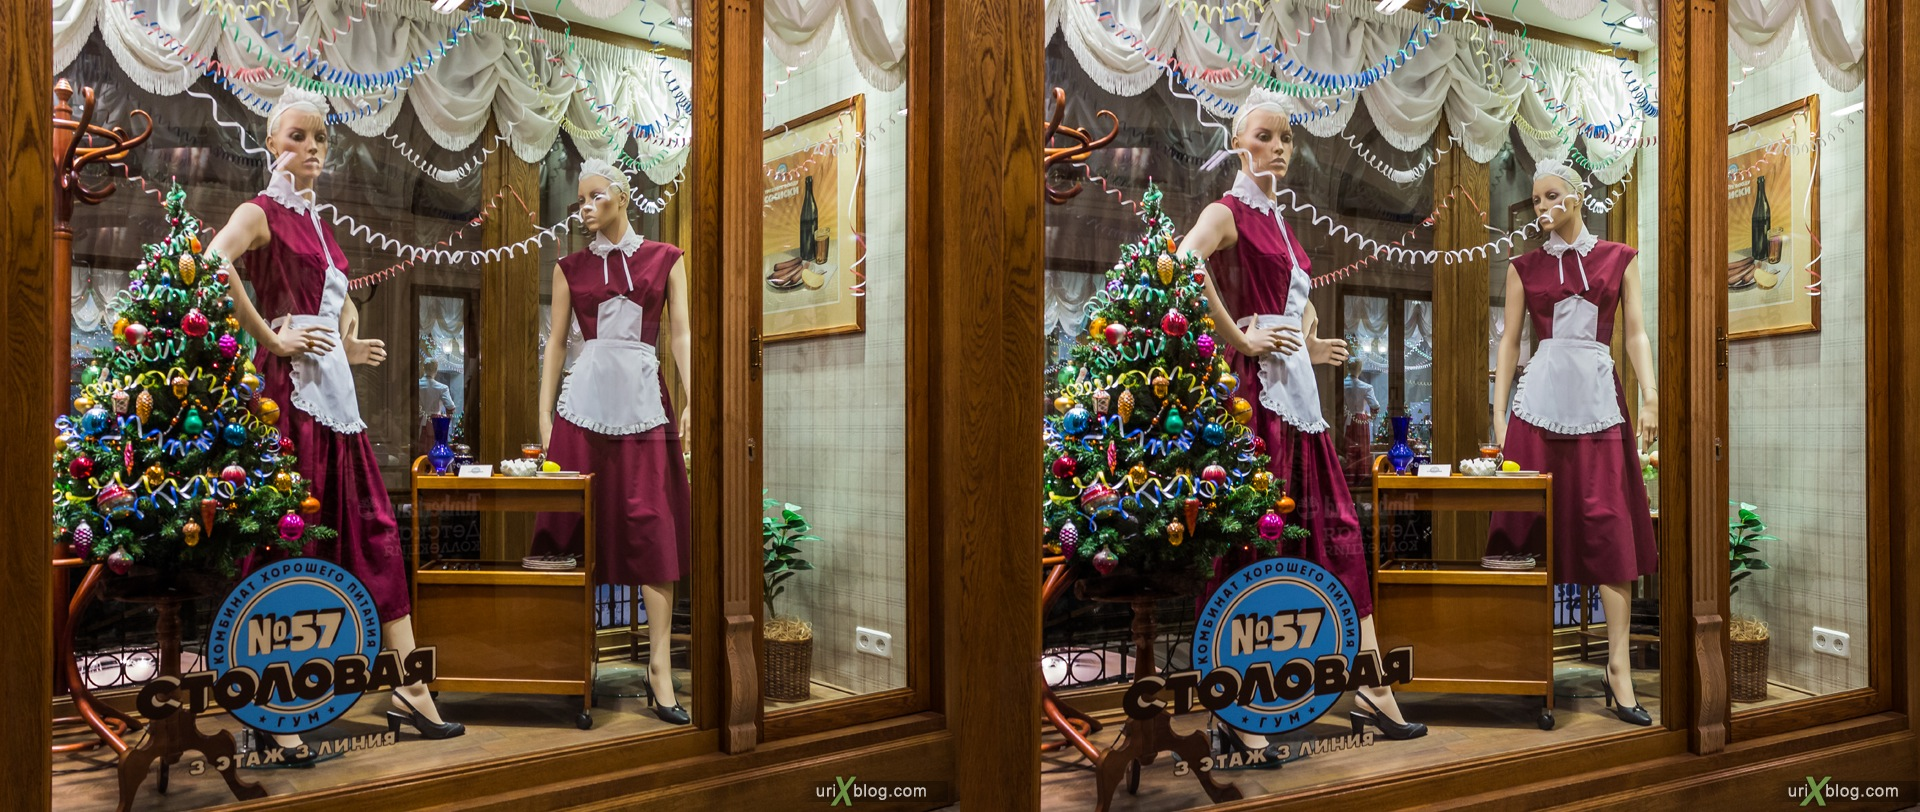 2013, Moscow, Russia, GUM, shop, mall, 3D, stereo pair, cross-eyed, crossview, cross view stereo pair, stereoscopic